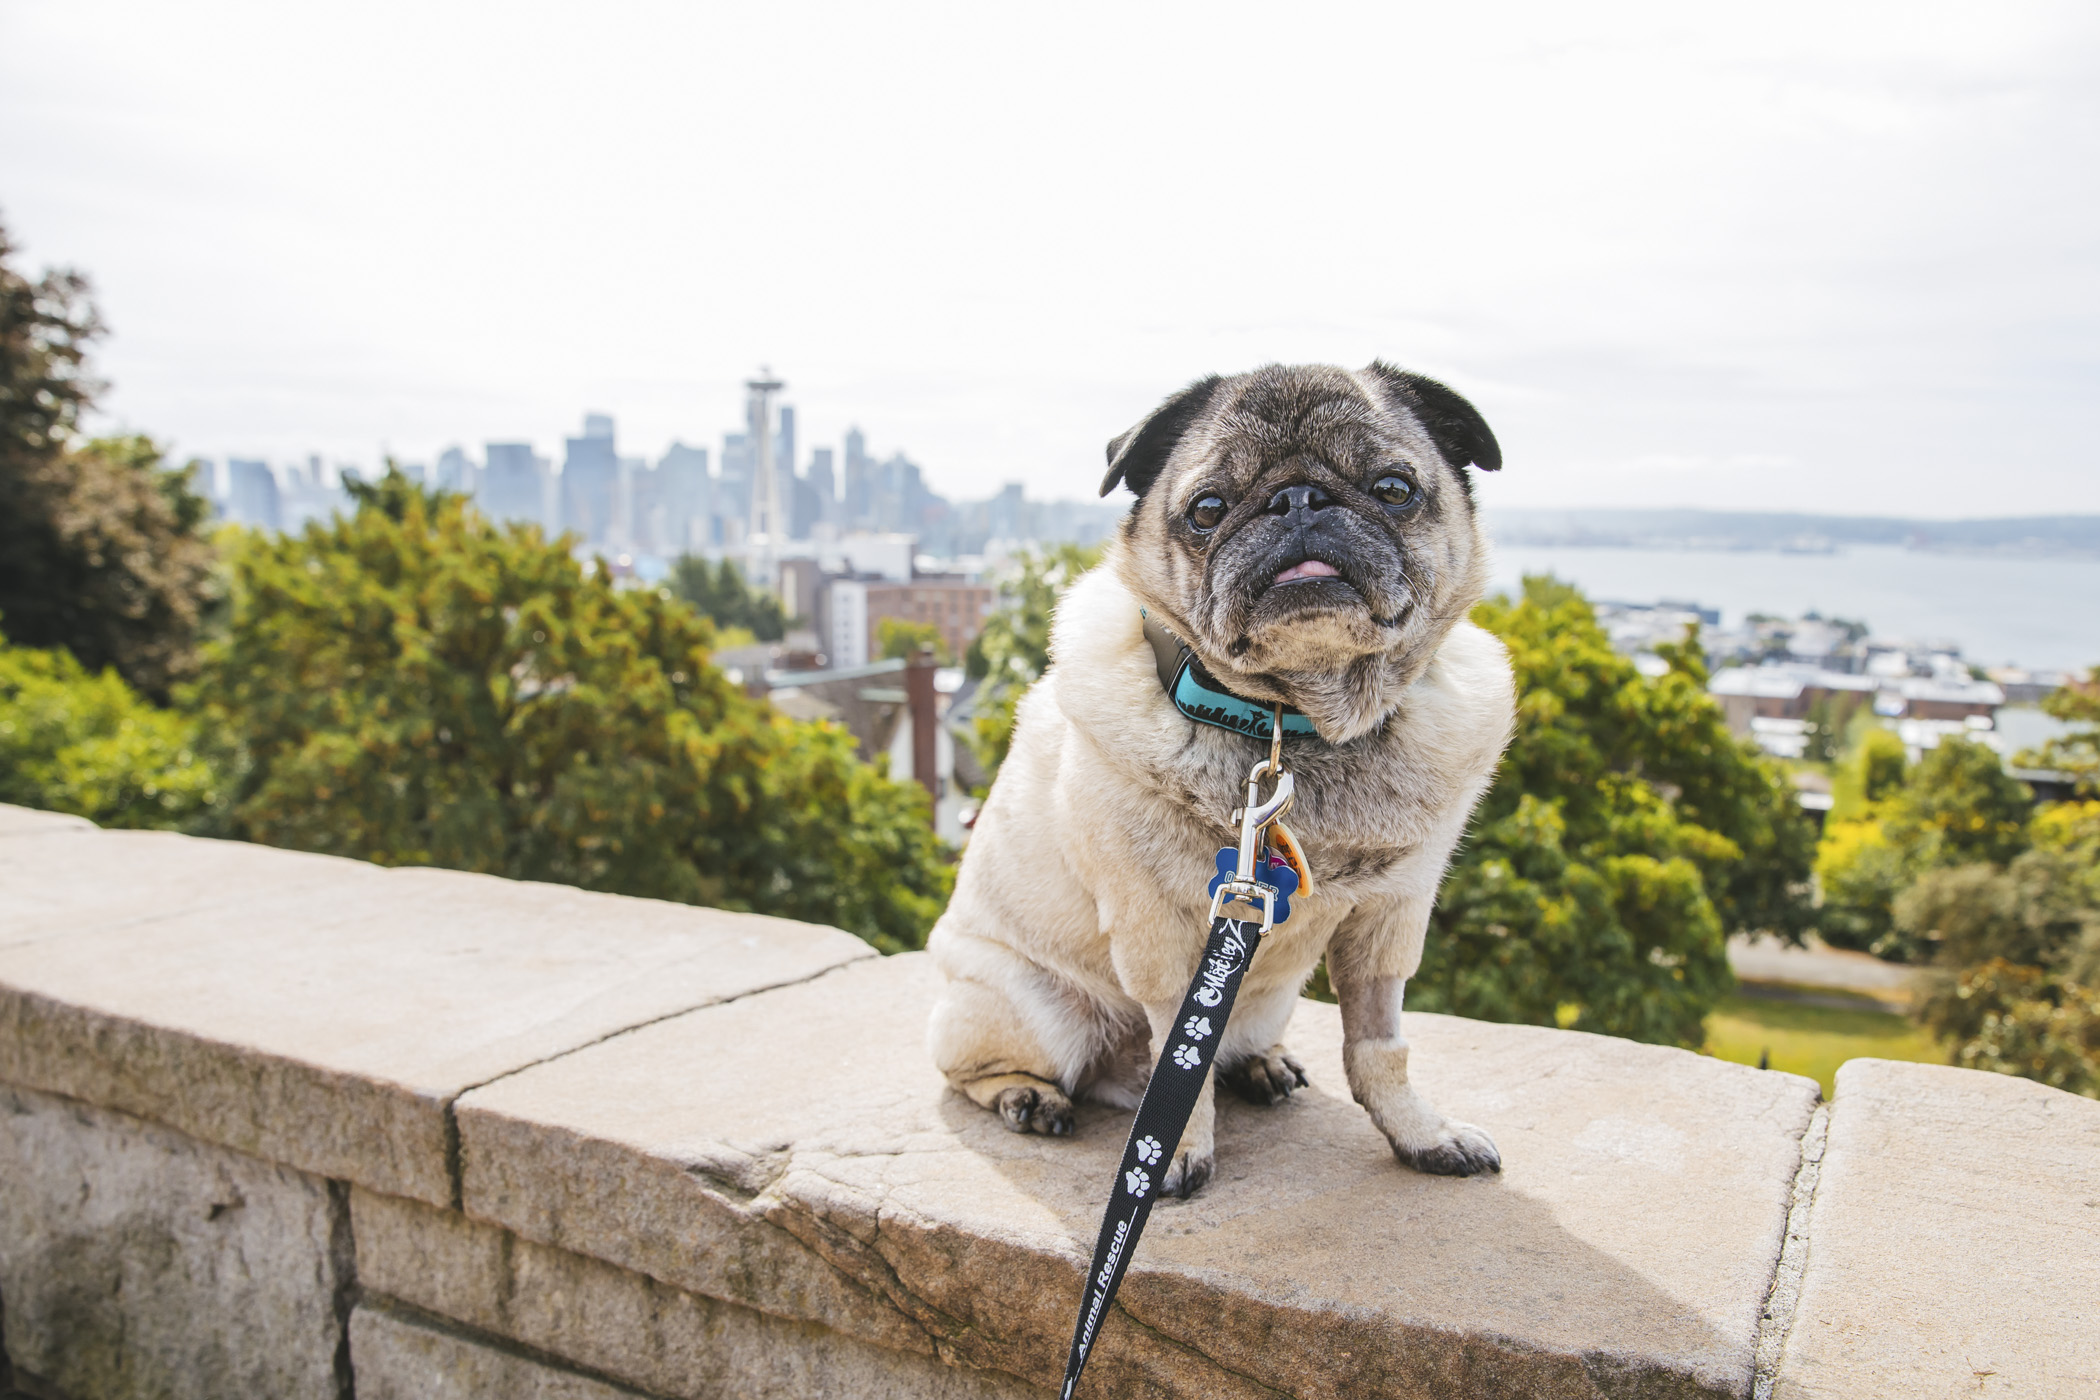 "This week's Pet of the Week is Otter aka ""Otter Pop!"" Otter is a nine year old Pug who was rescued from Seattle Pug Rescue and now lives a pampered life of retirement in Puyallup. Otter likes food, car rides, people watching, cuddling with his momma, puppies, sun bathing and naps. He dislikes nail times, late meals, baths (or water of any kind) and traffic.{ }The Seattle RUFFined Spotlight is a weekly profile of local pets living and loving life in the PNW. If you or someone you know has a pet you'd like featured, email us at hello@seattlerefined.com or tag #SeattleRUFFined and your furbaby could be the next spotlighted! (Image: Sunita Martini / Seattle Refined)."